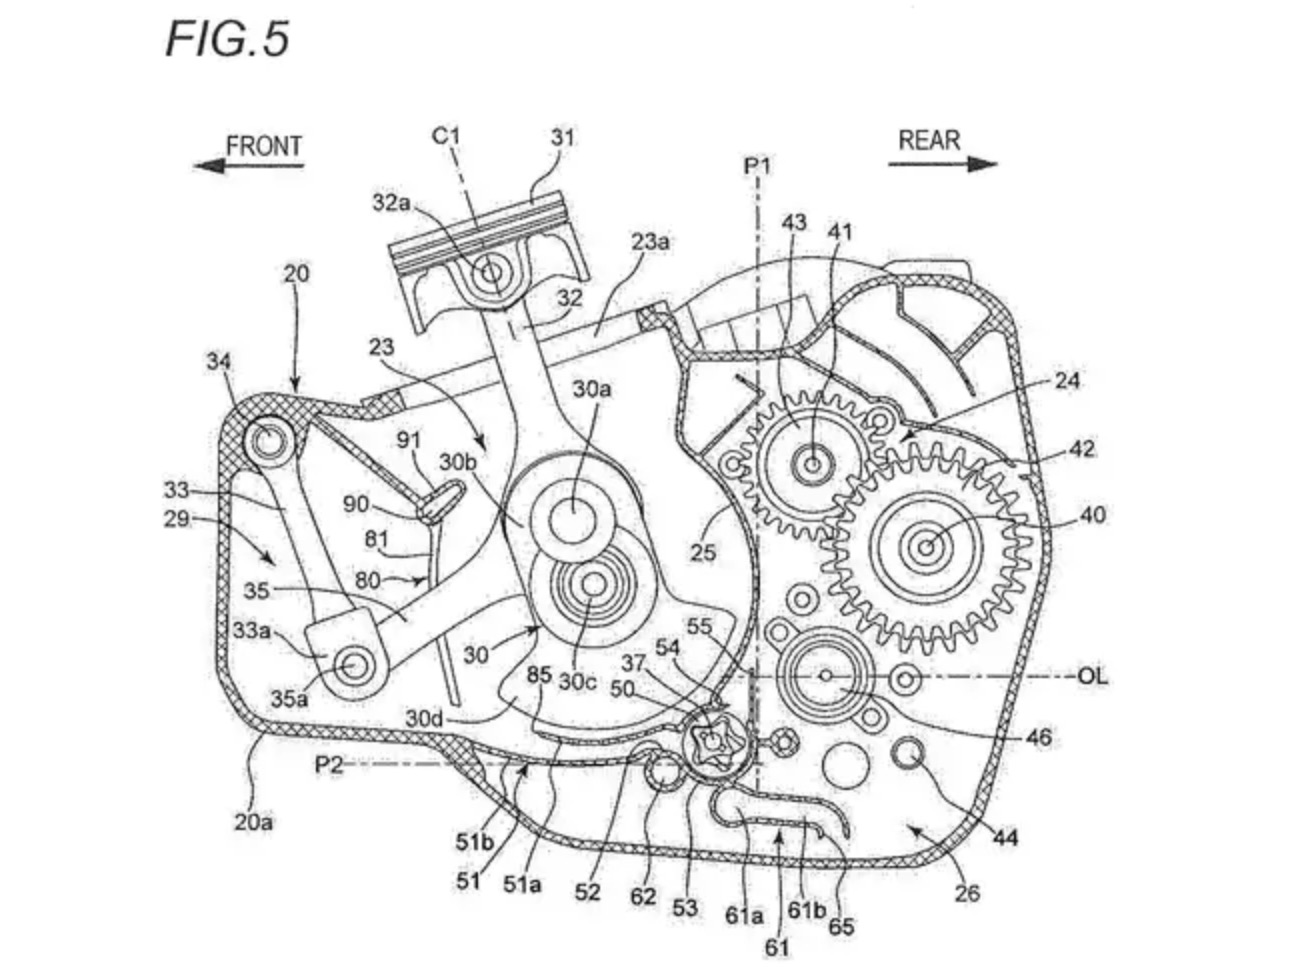 Suzuki's Counterbalanced Single-Cylinder Engine Patent